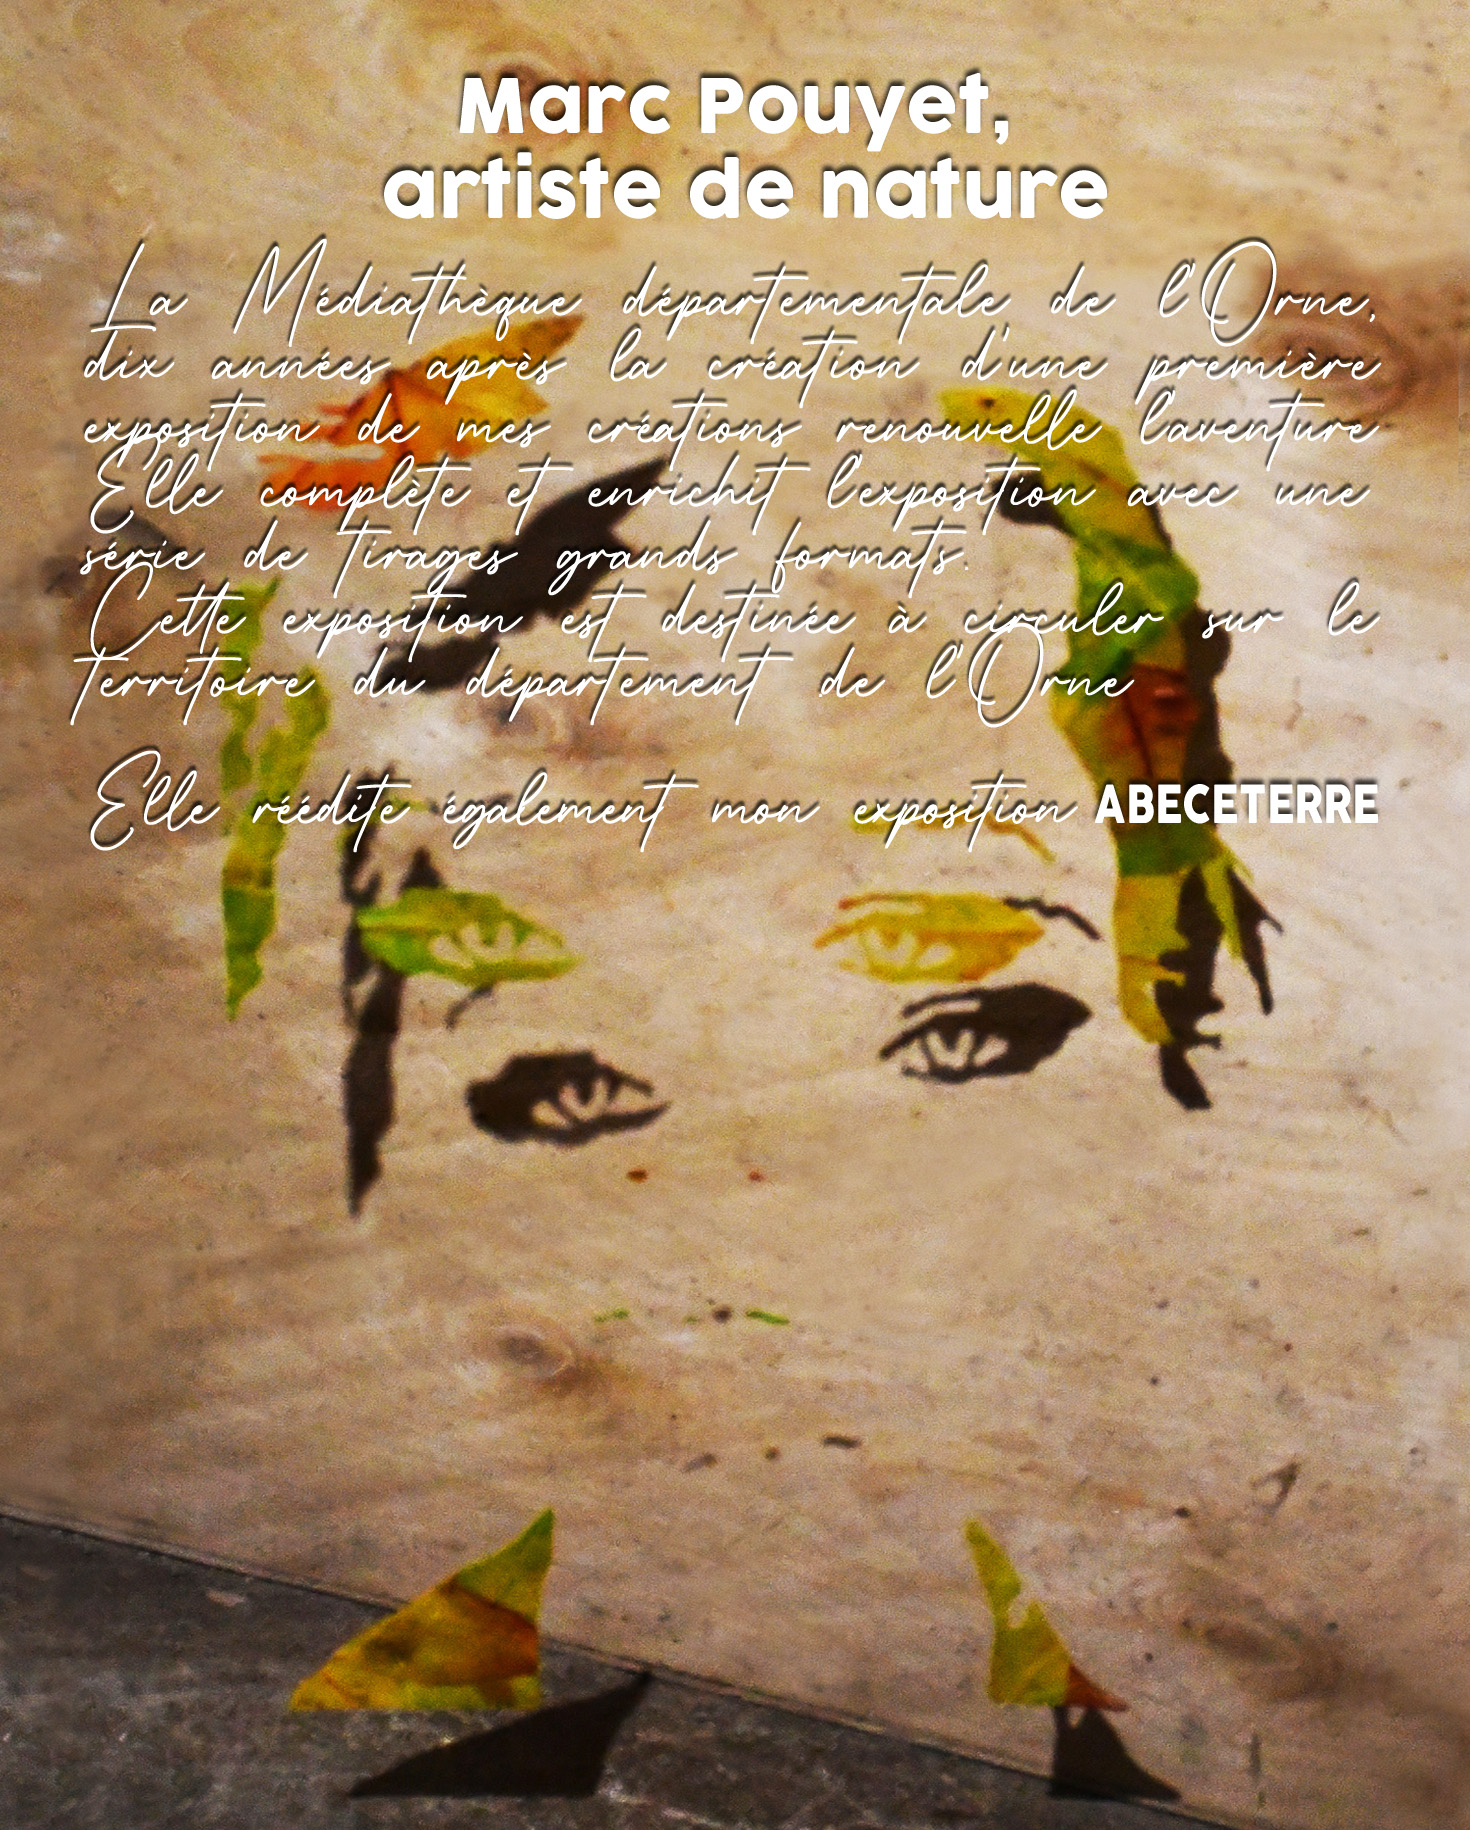 ARTICLE EXPOSITION ORNE